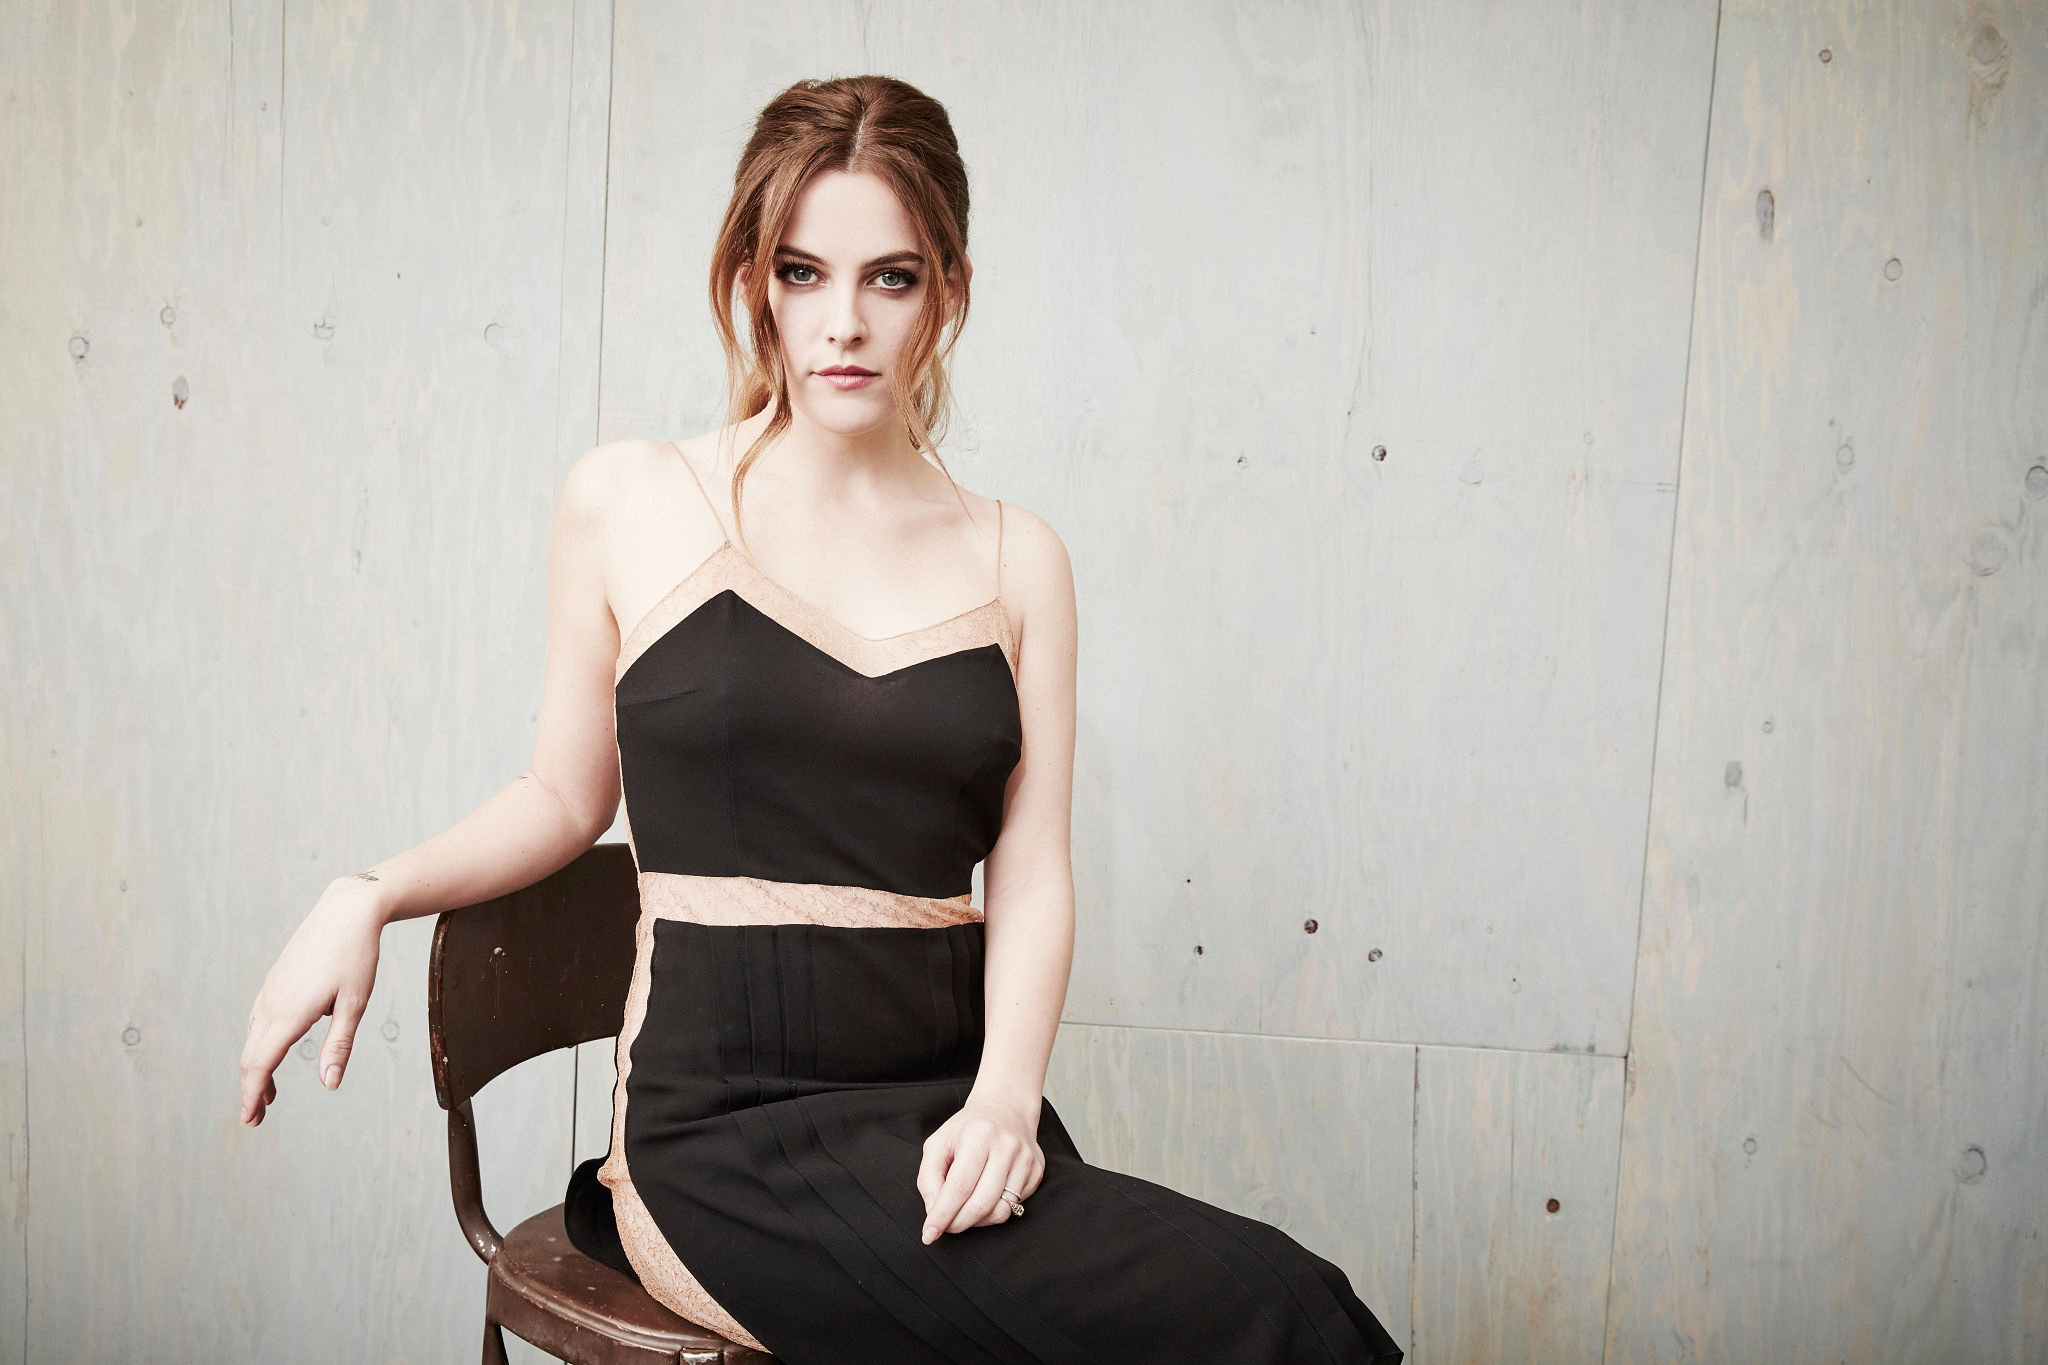 2048x1365 - Riley Keough Wallpapers 7